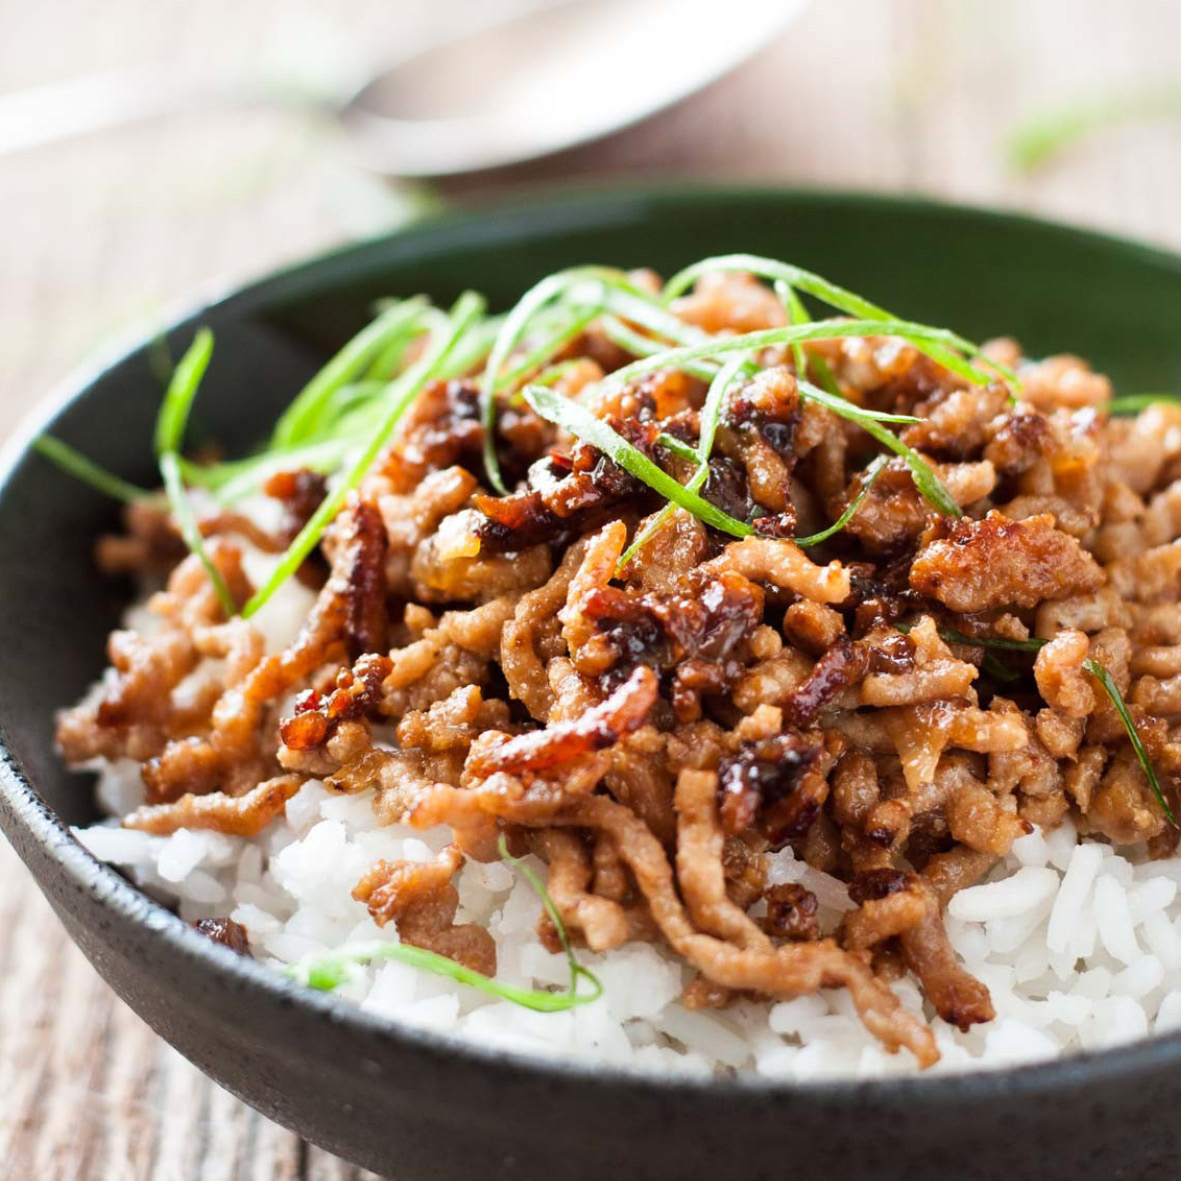 vietnamese_caramelised_pork_stir_fry.jpg